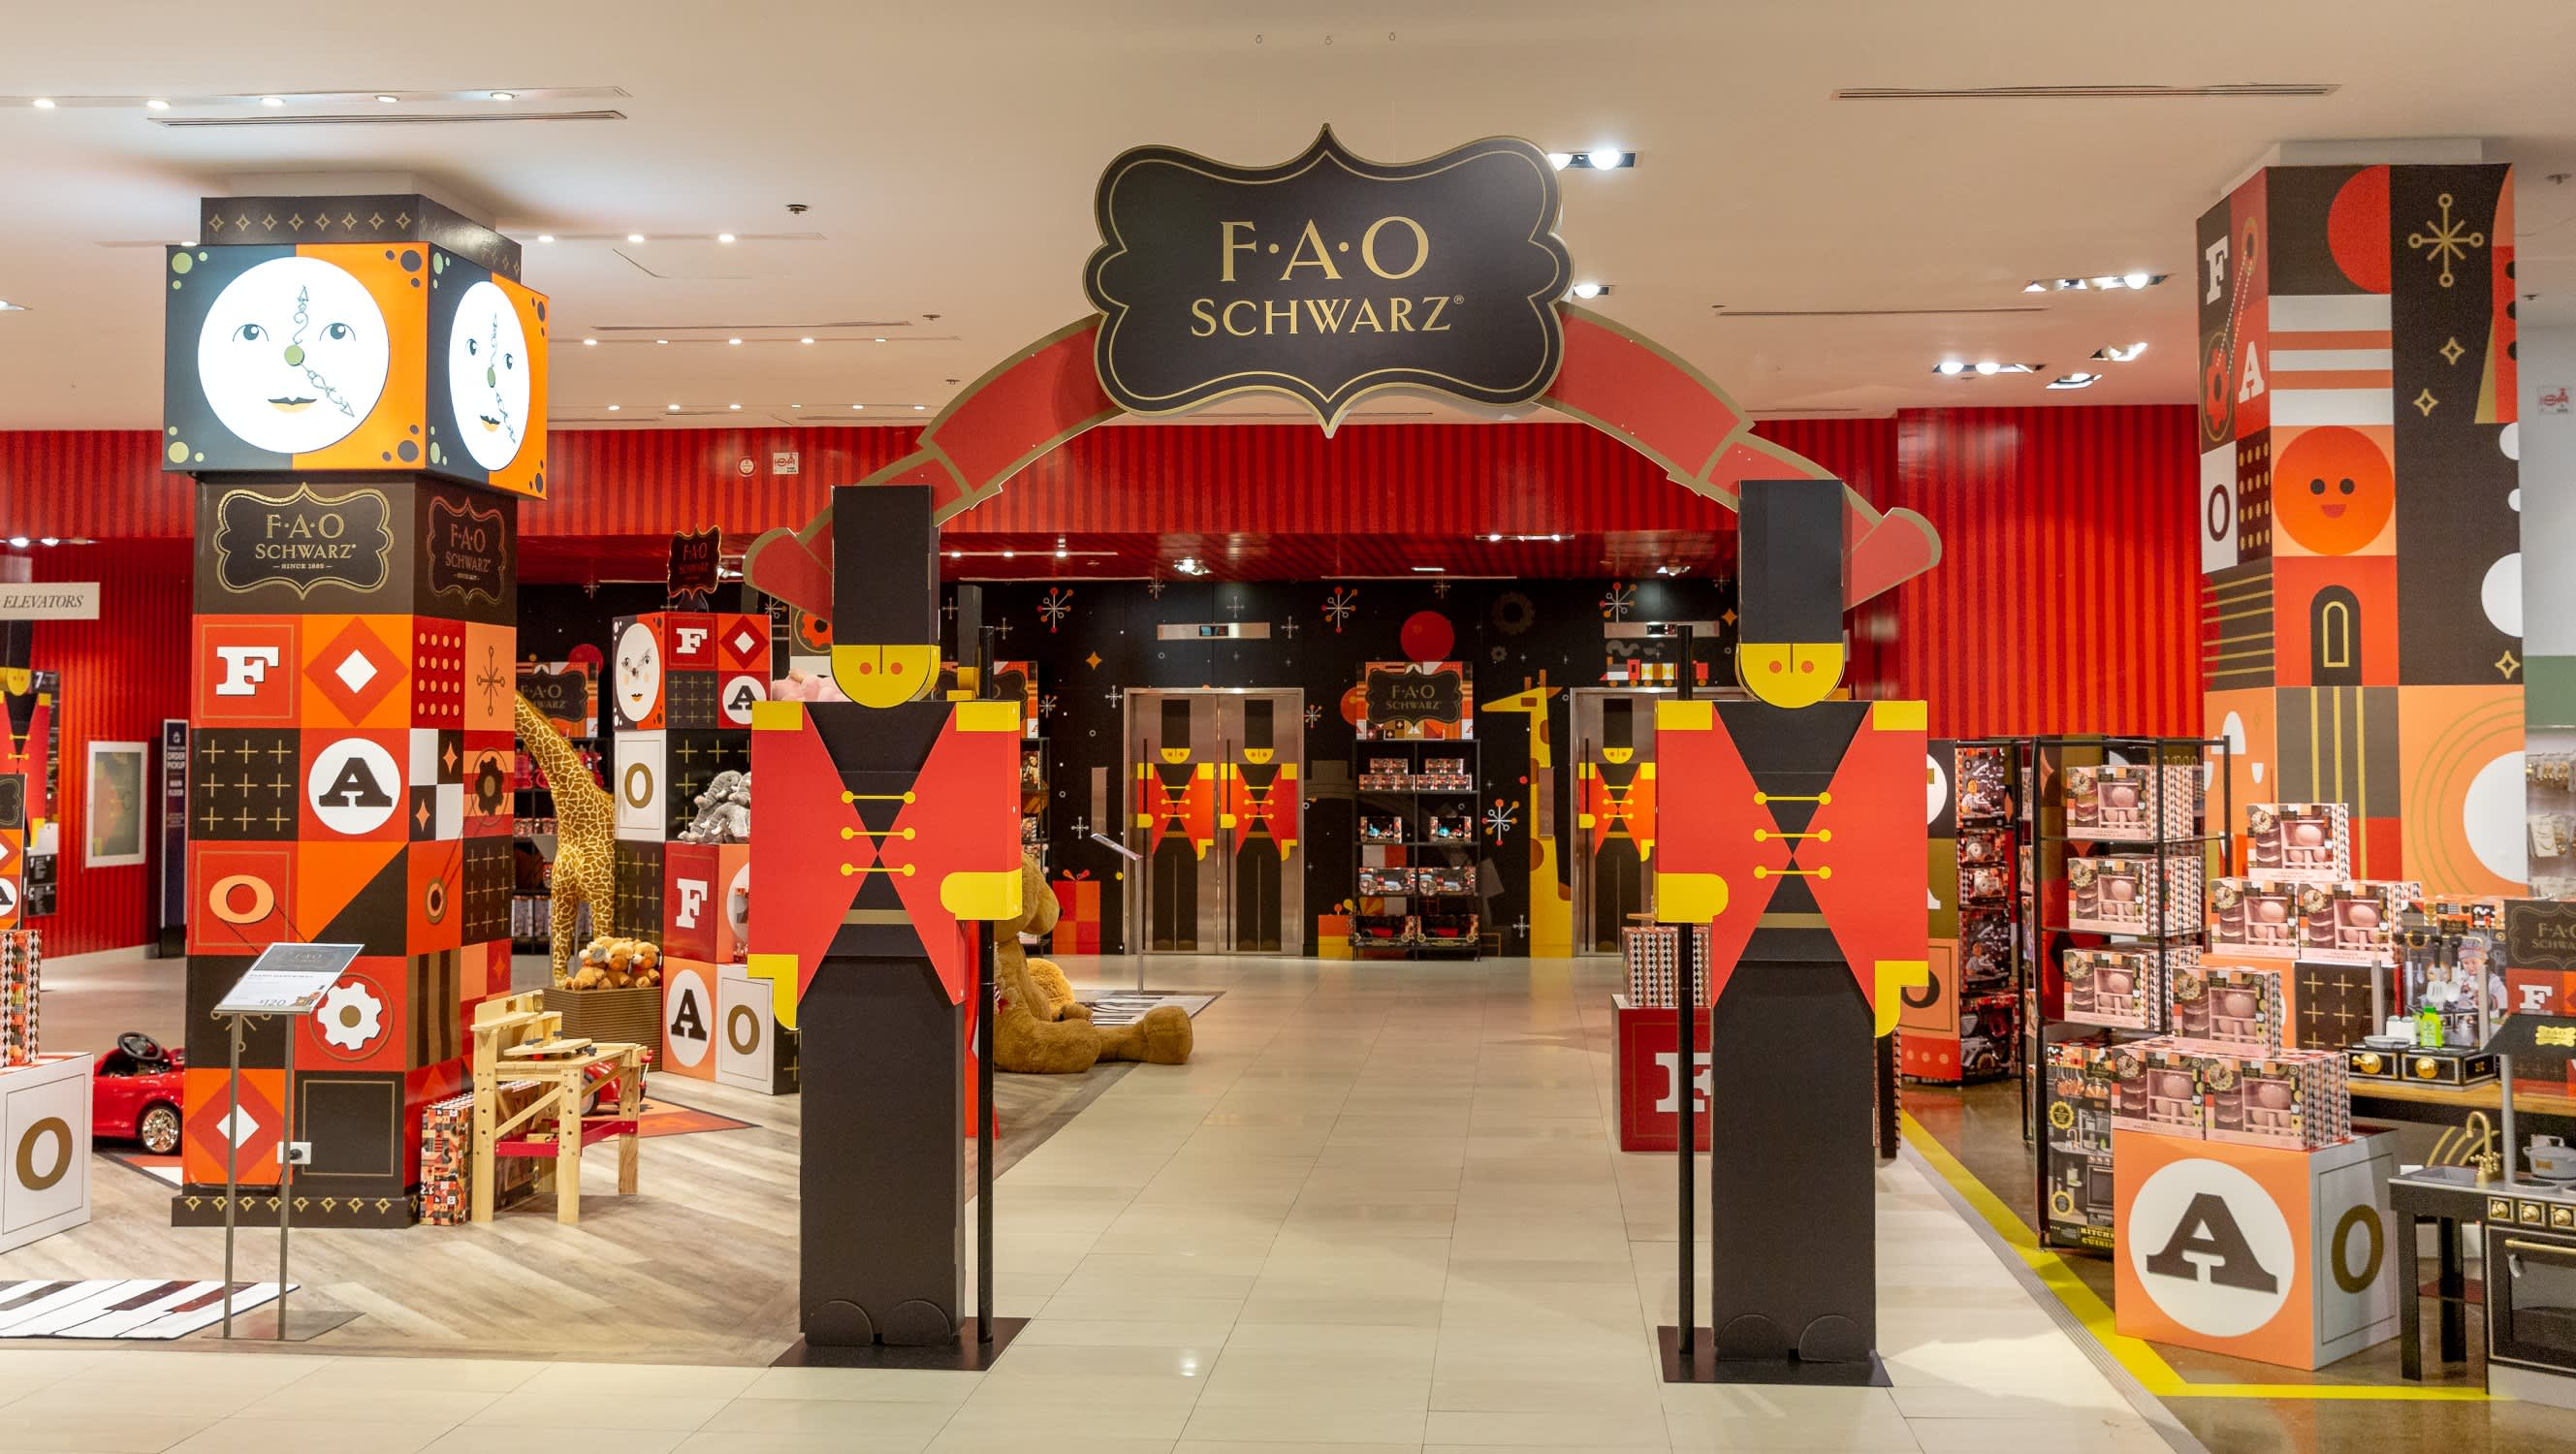 Spiegel-shop Fao Schwarz Is Back In New York Here S What Its New Store Looks Like